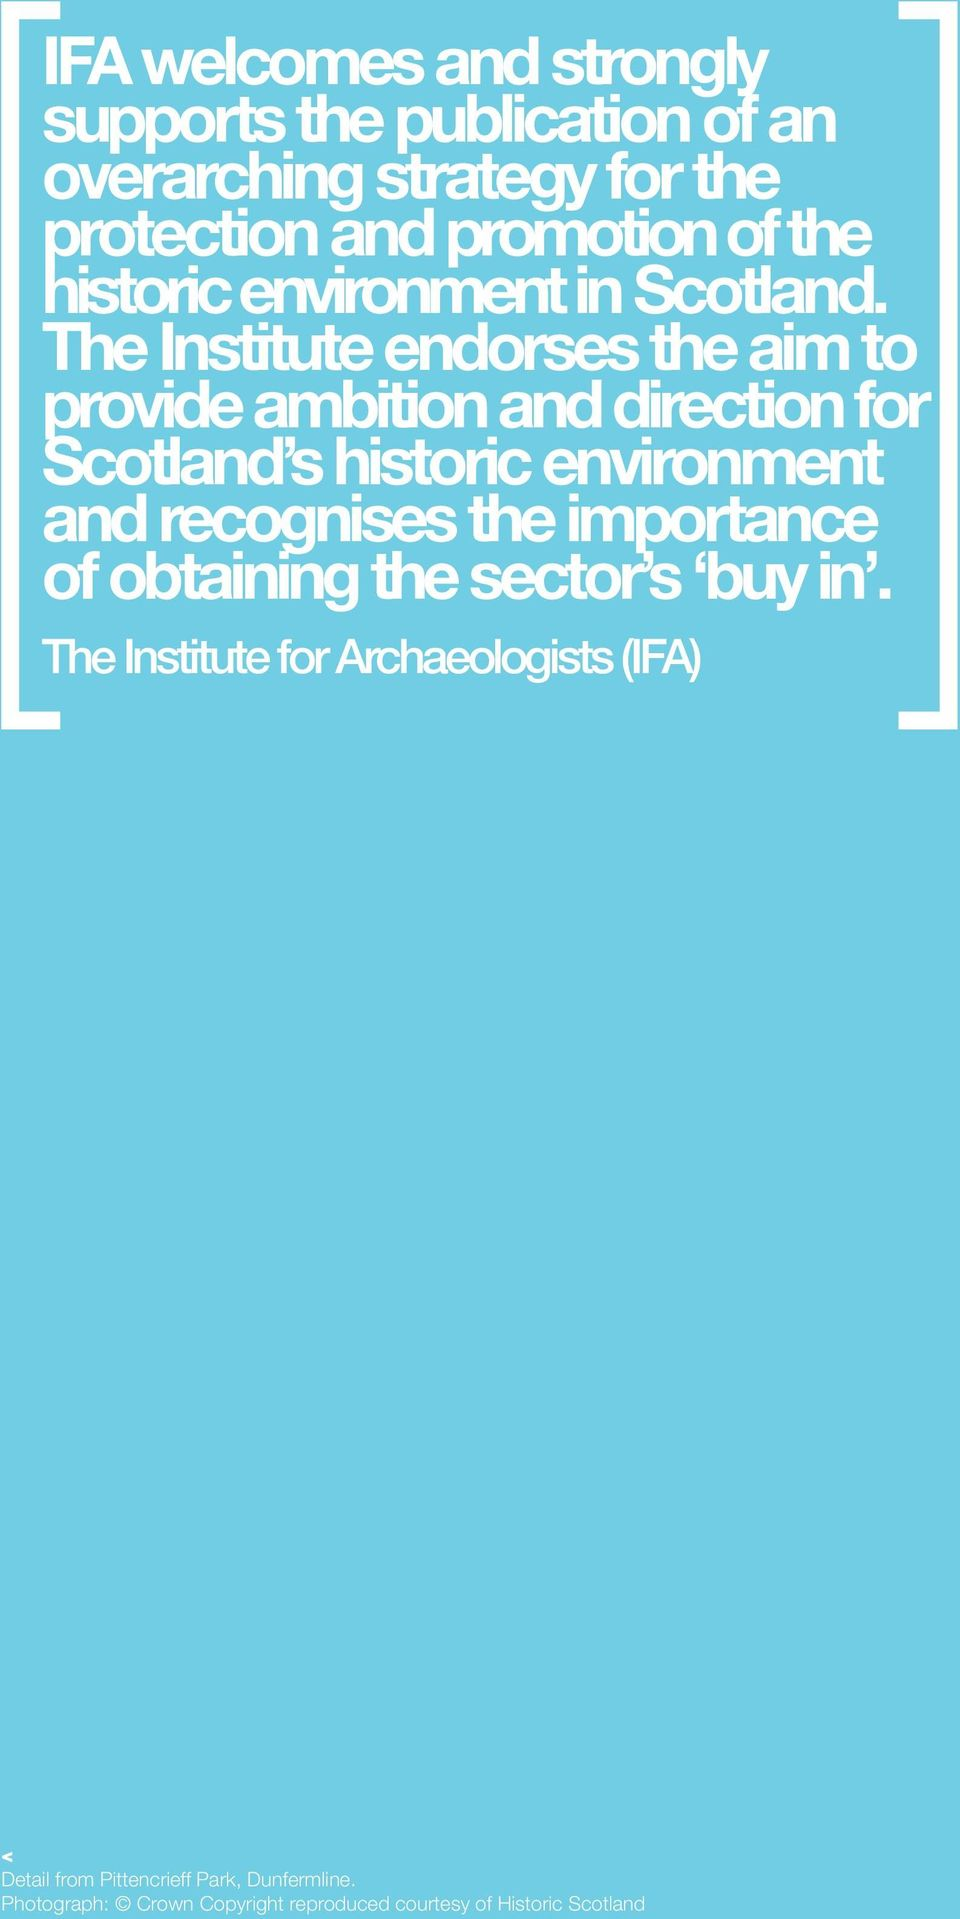 The Institute endorses the aim to provide ambition and direction for Scotland s historic environment and recognises